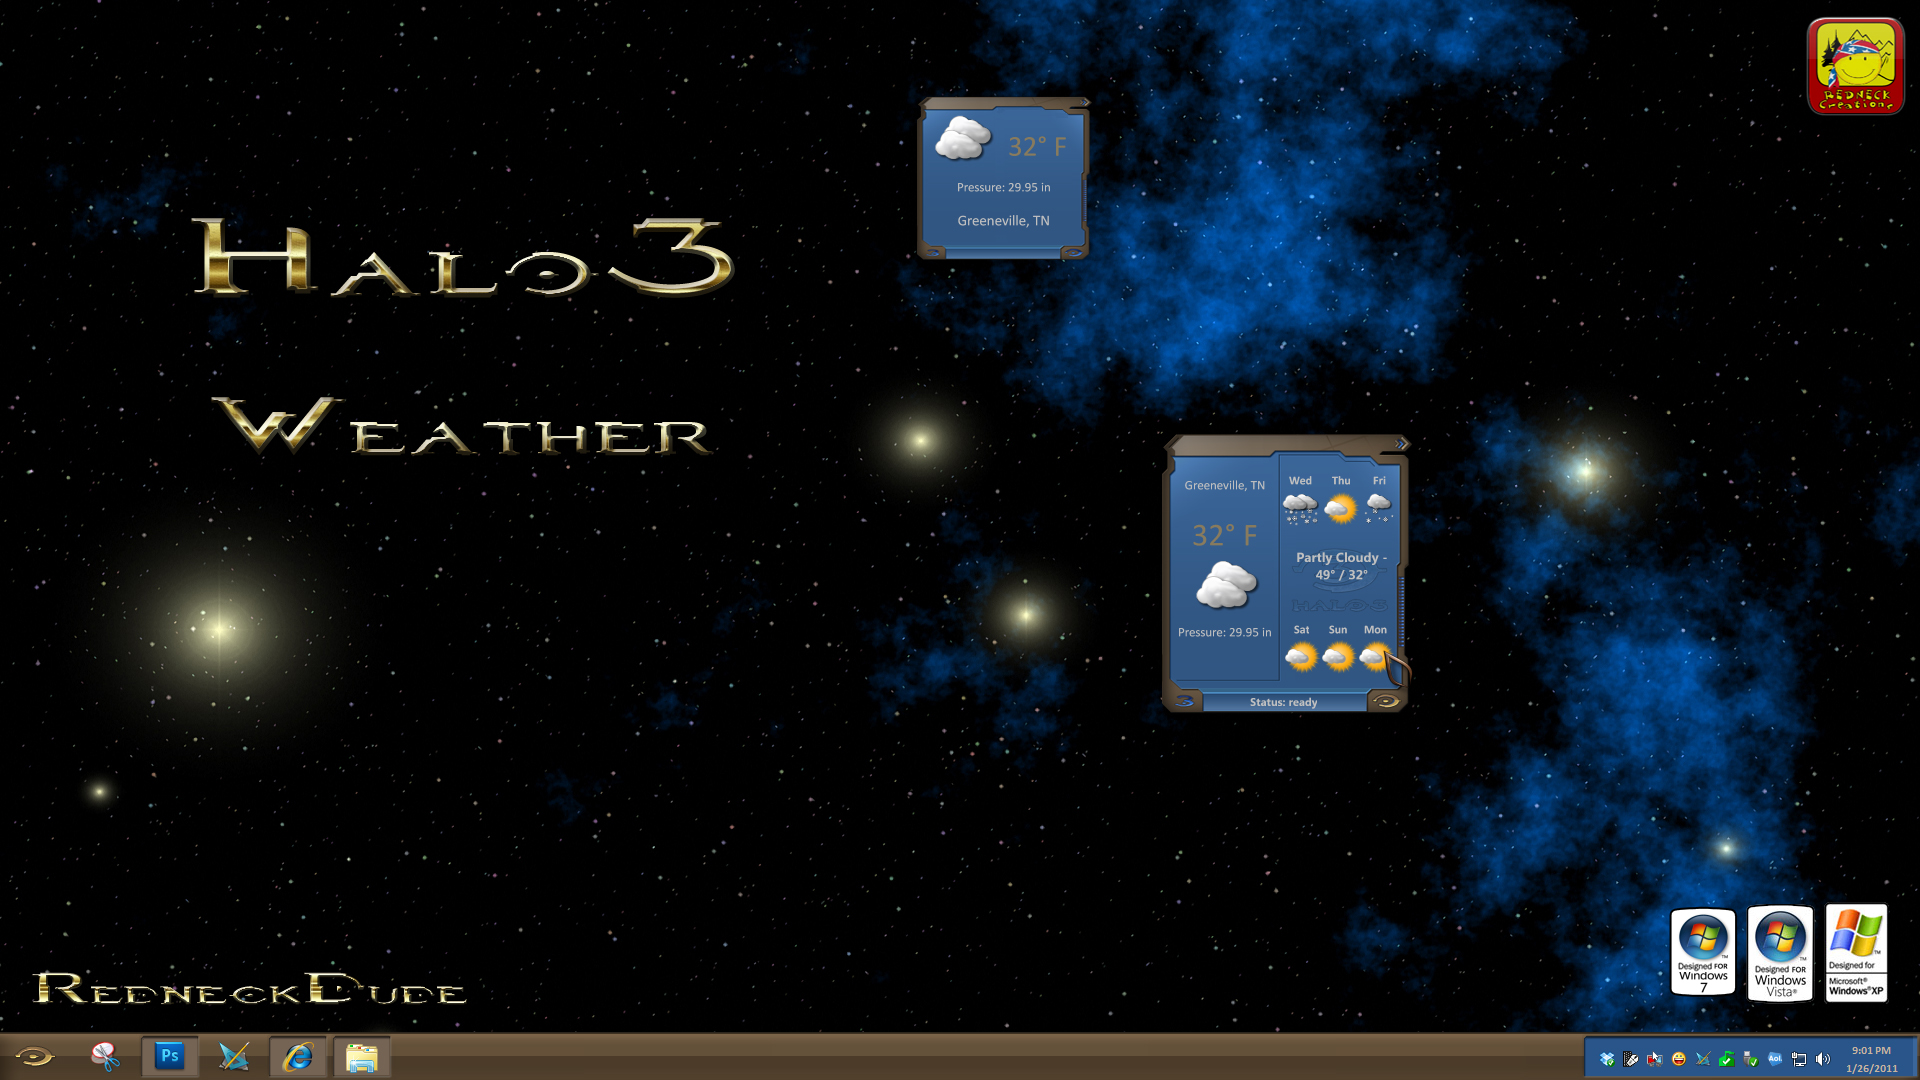 Halo3 Weather